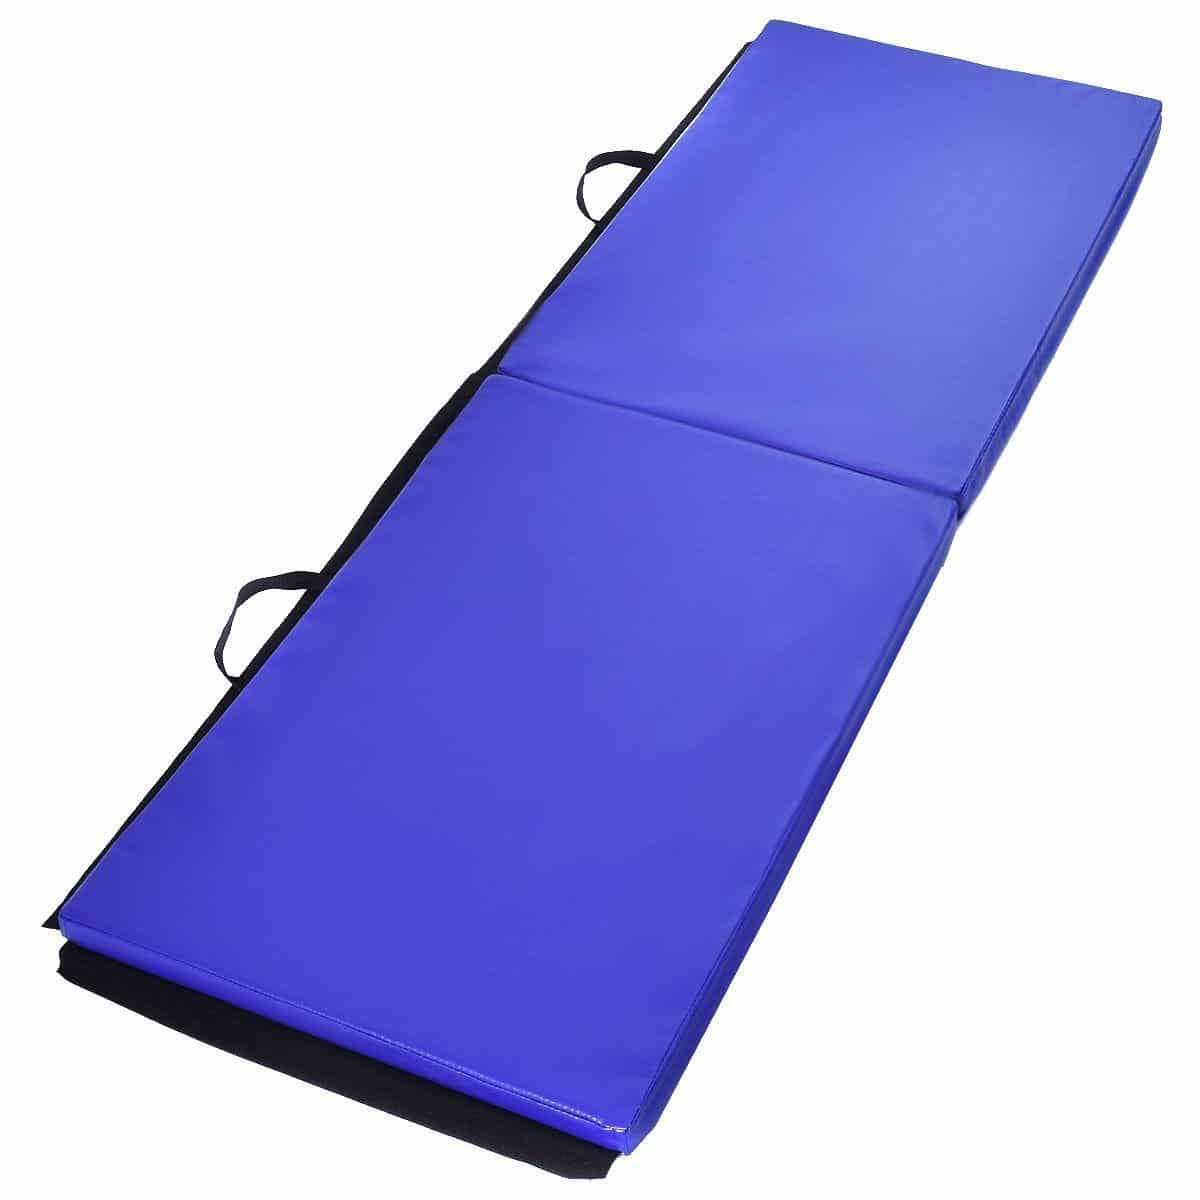 memory nbr high anti gym foam pilates mats pad store slip yoga eco density waterproof friendly mat fitness durable exercise product training